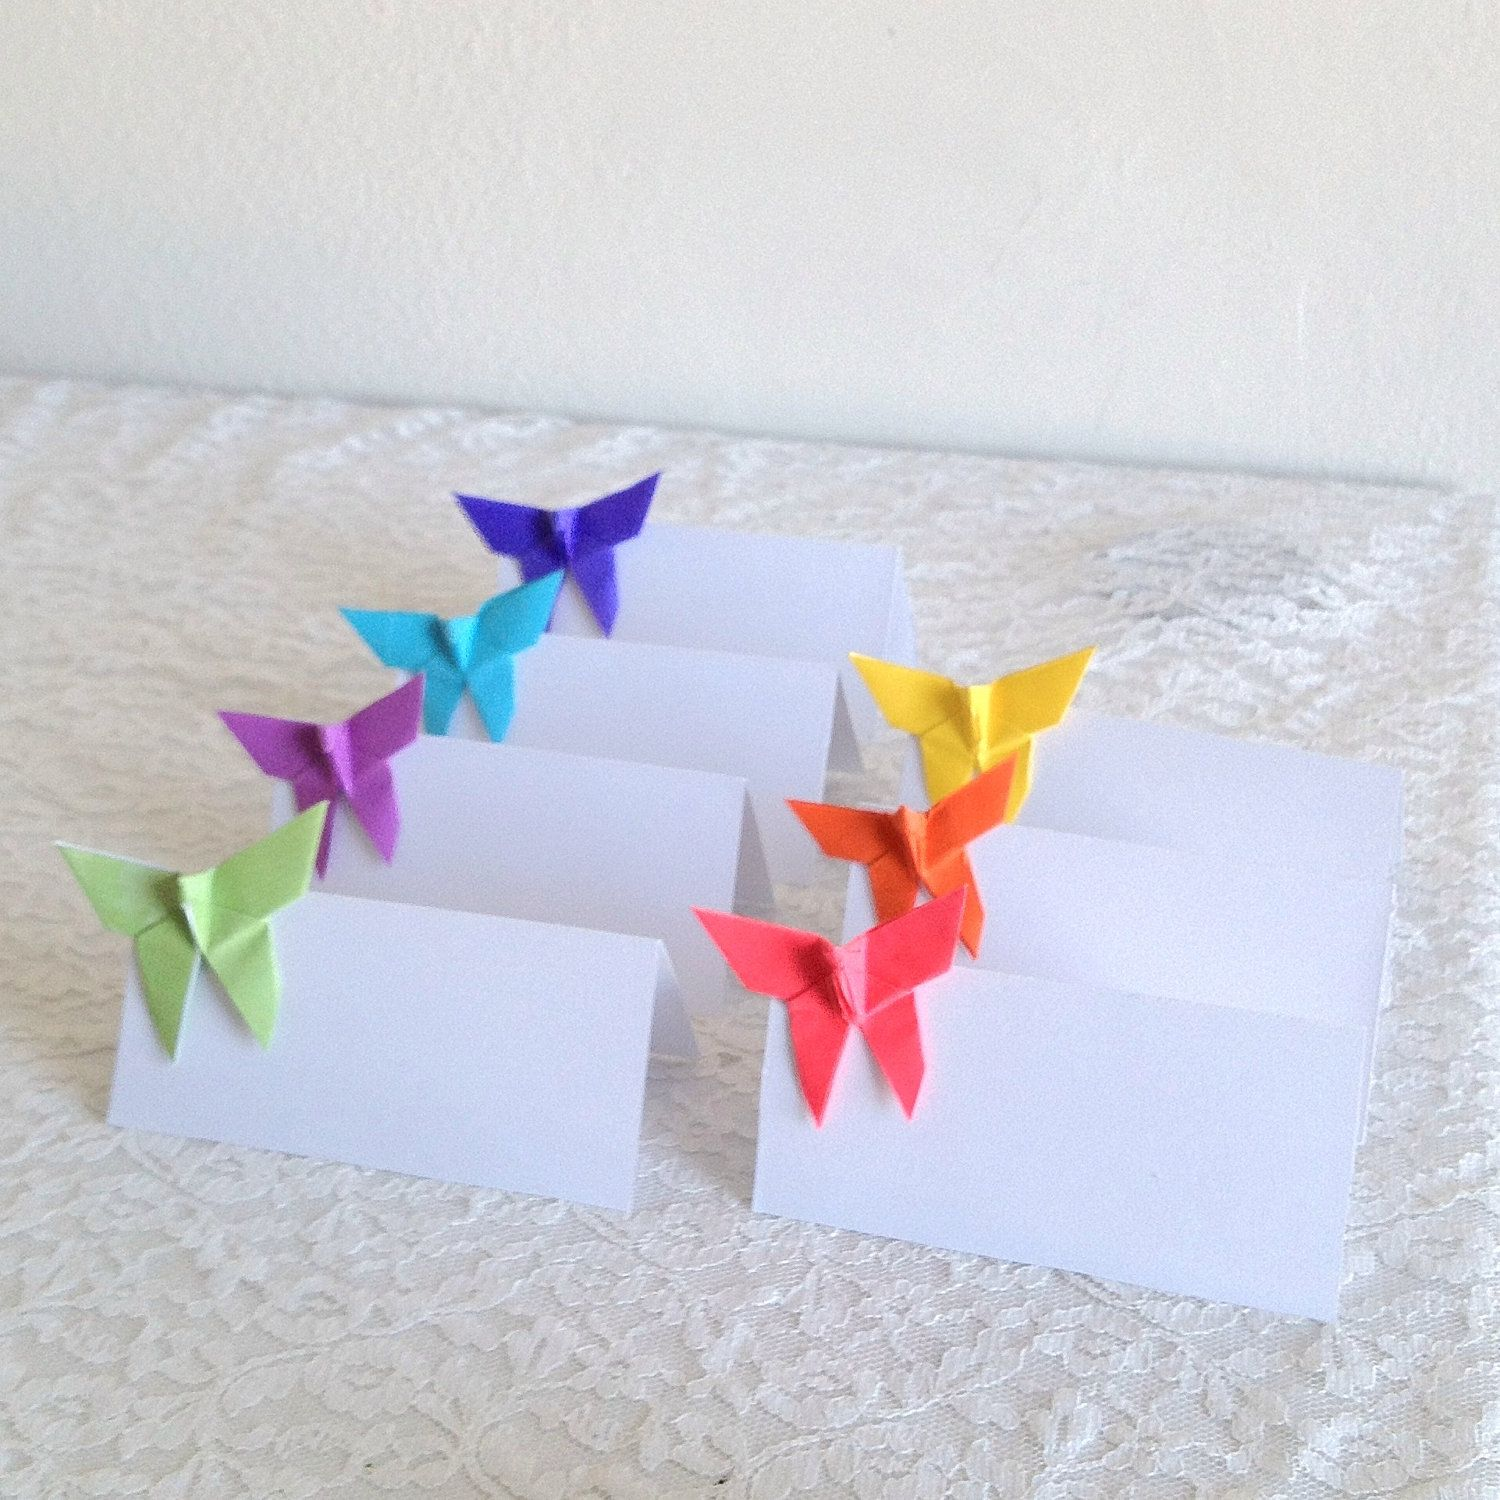 Origami butterfly place cards wedding escort cards by nikkipoparts origami butterfly place cards wedding escort cards by nikkipoparts 2200 jeuxipadfo Choice Image